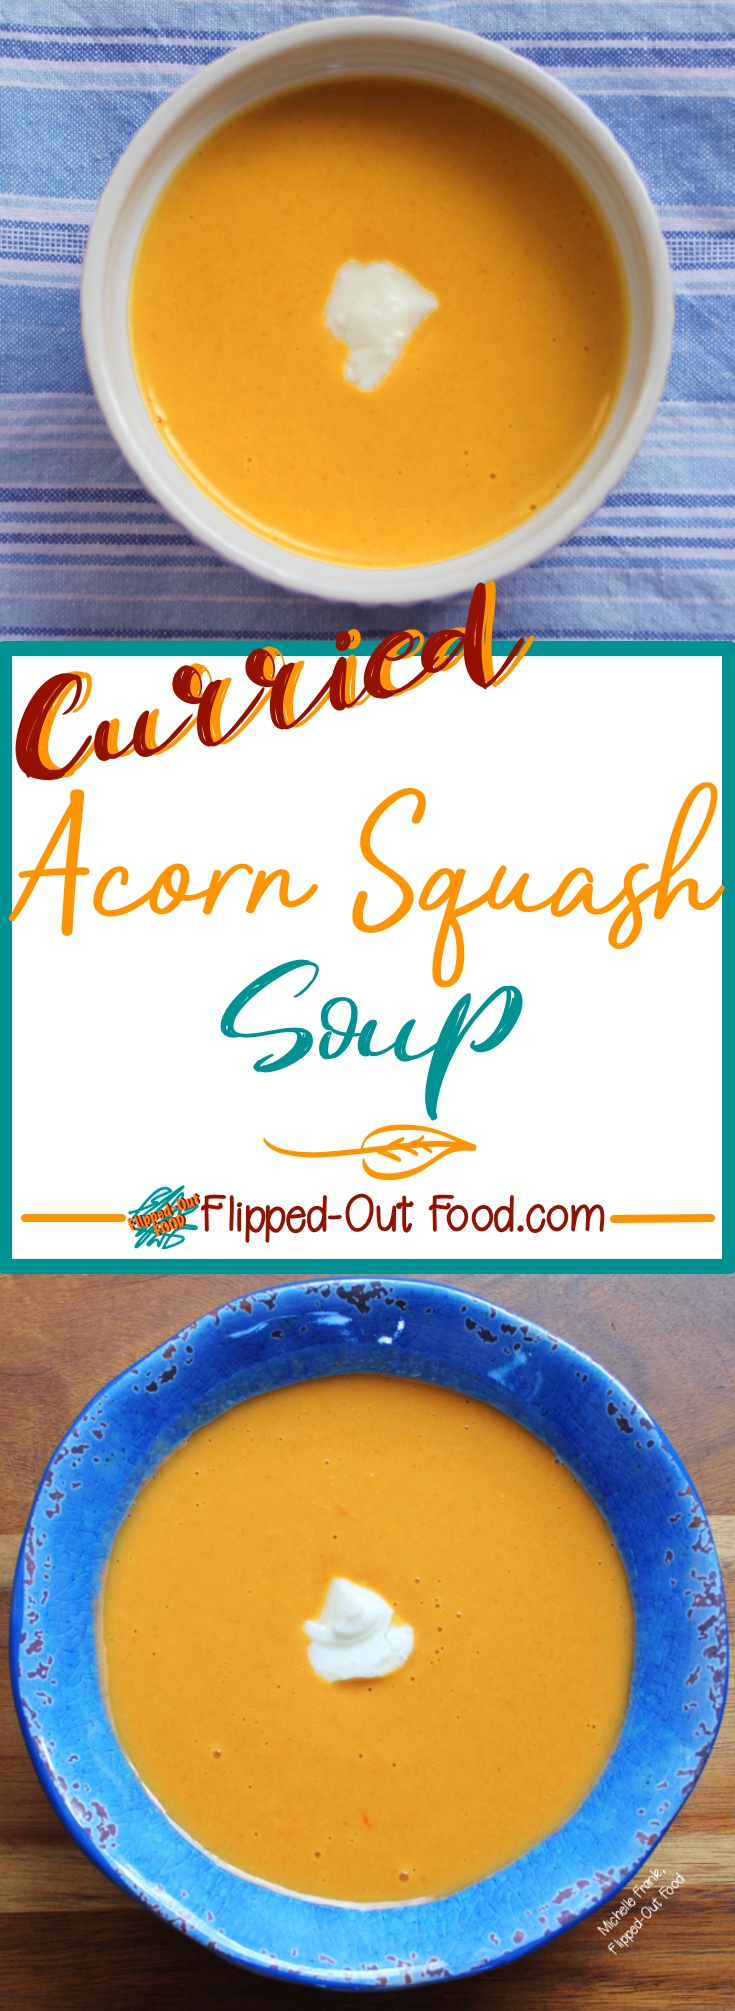 Curried Acorn Squash Soup is a delicious, healthy, vegetarian option for lunch or a light dinner. Or, serve it in shot glasses for a fun party appetizer.